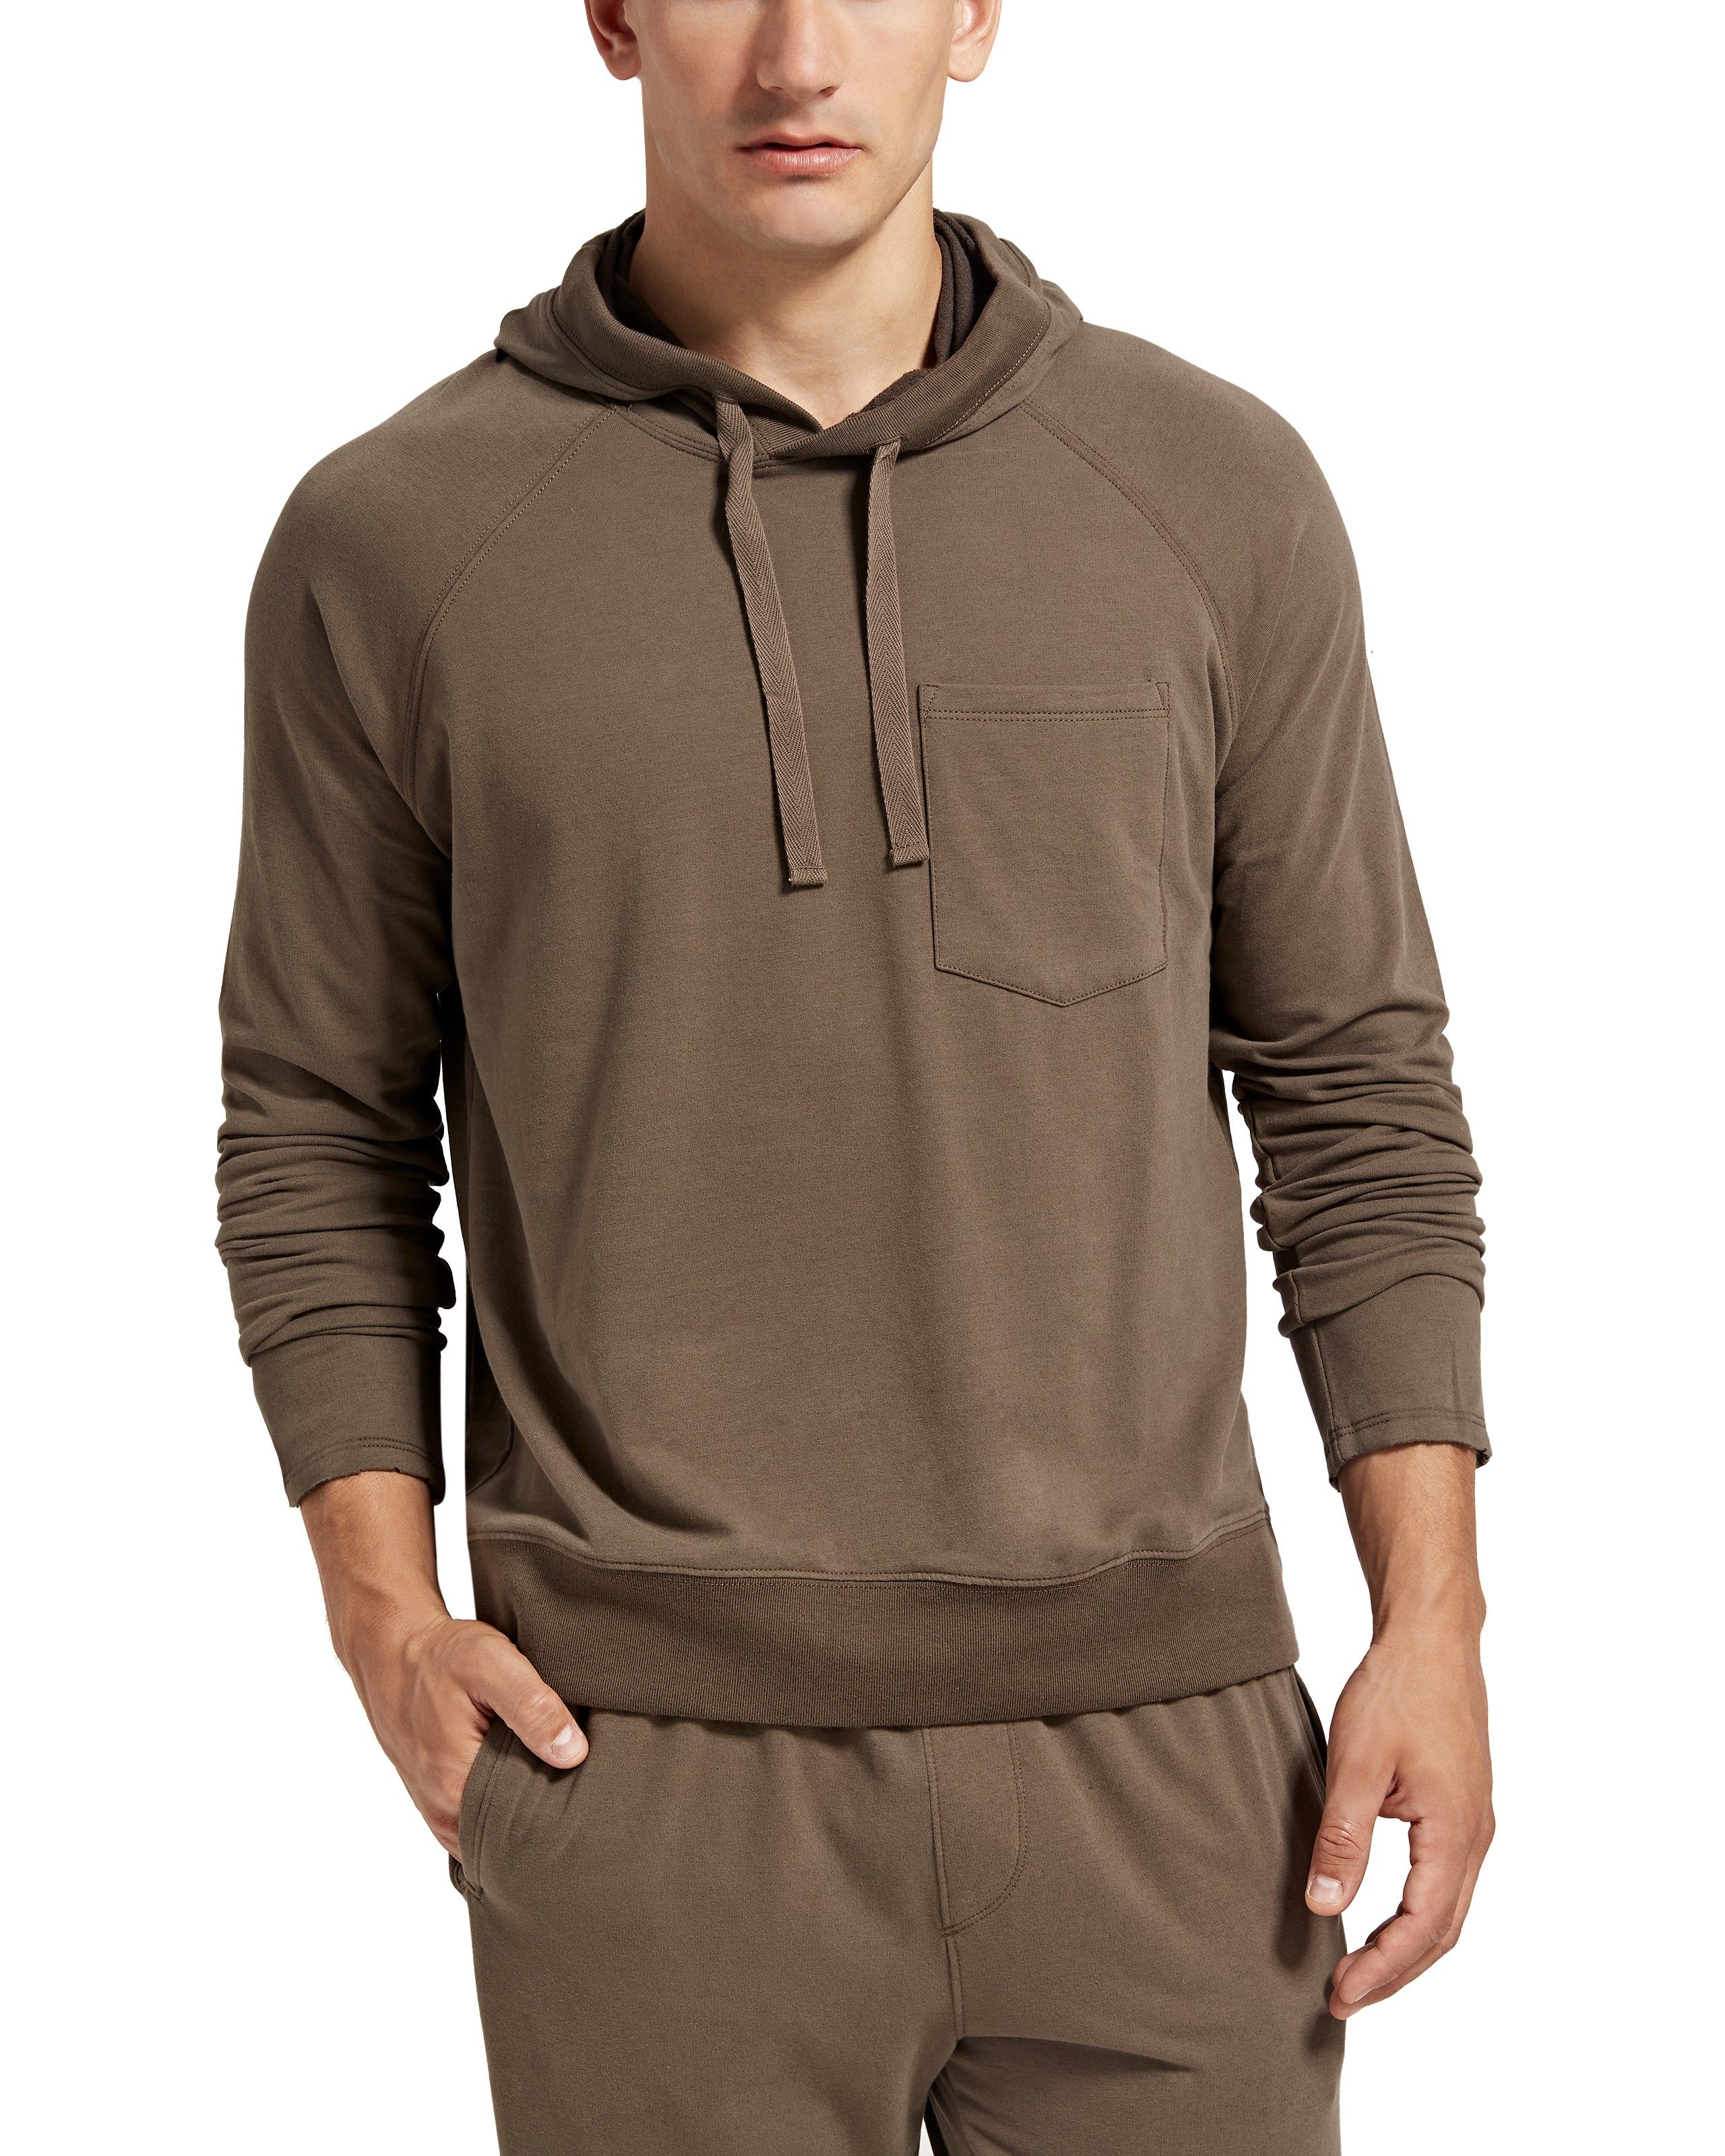 ATM Brushed Fleece Pull Over Hoodie